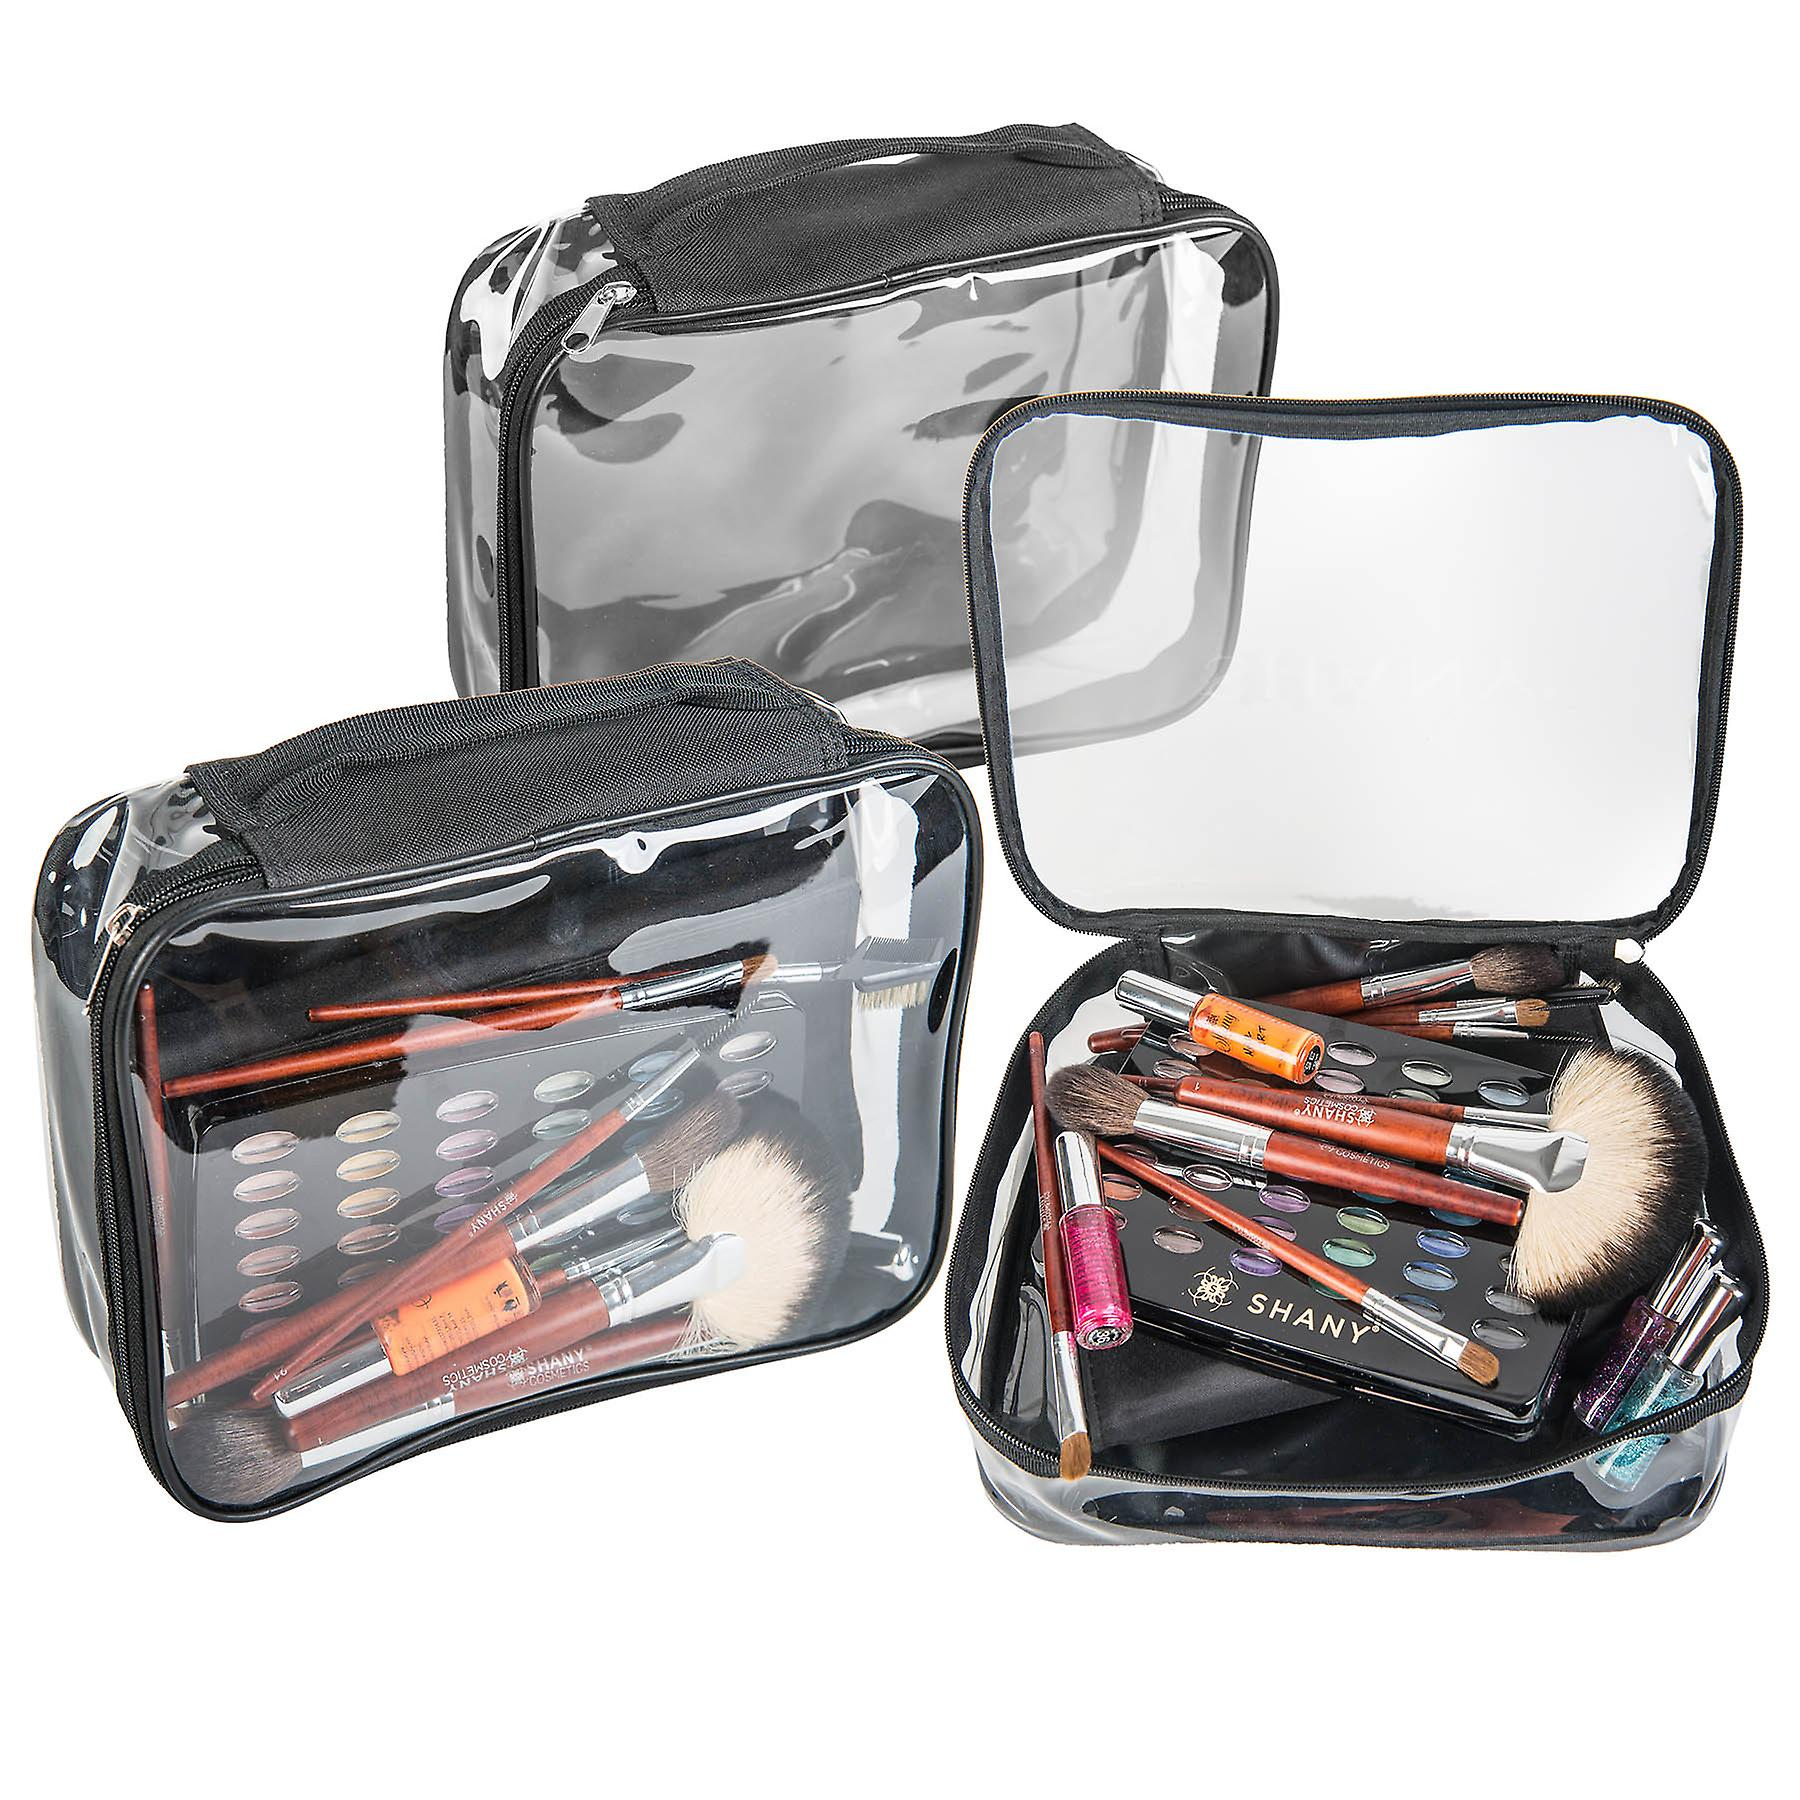 It's Show Time Travel Bag - Clear Waterproof Travel Storage for Home/Travel Use